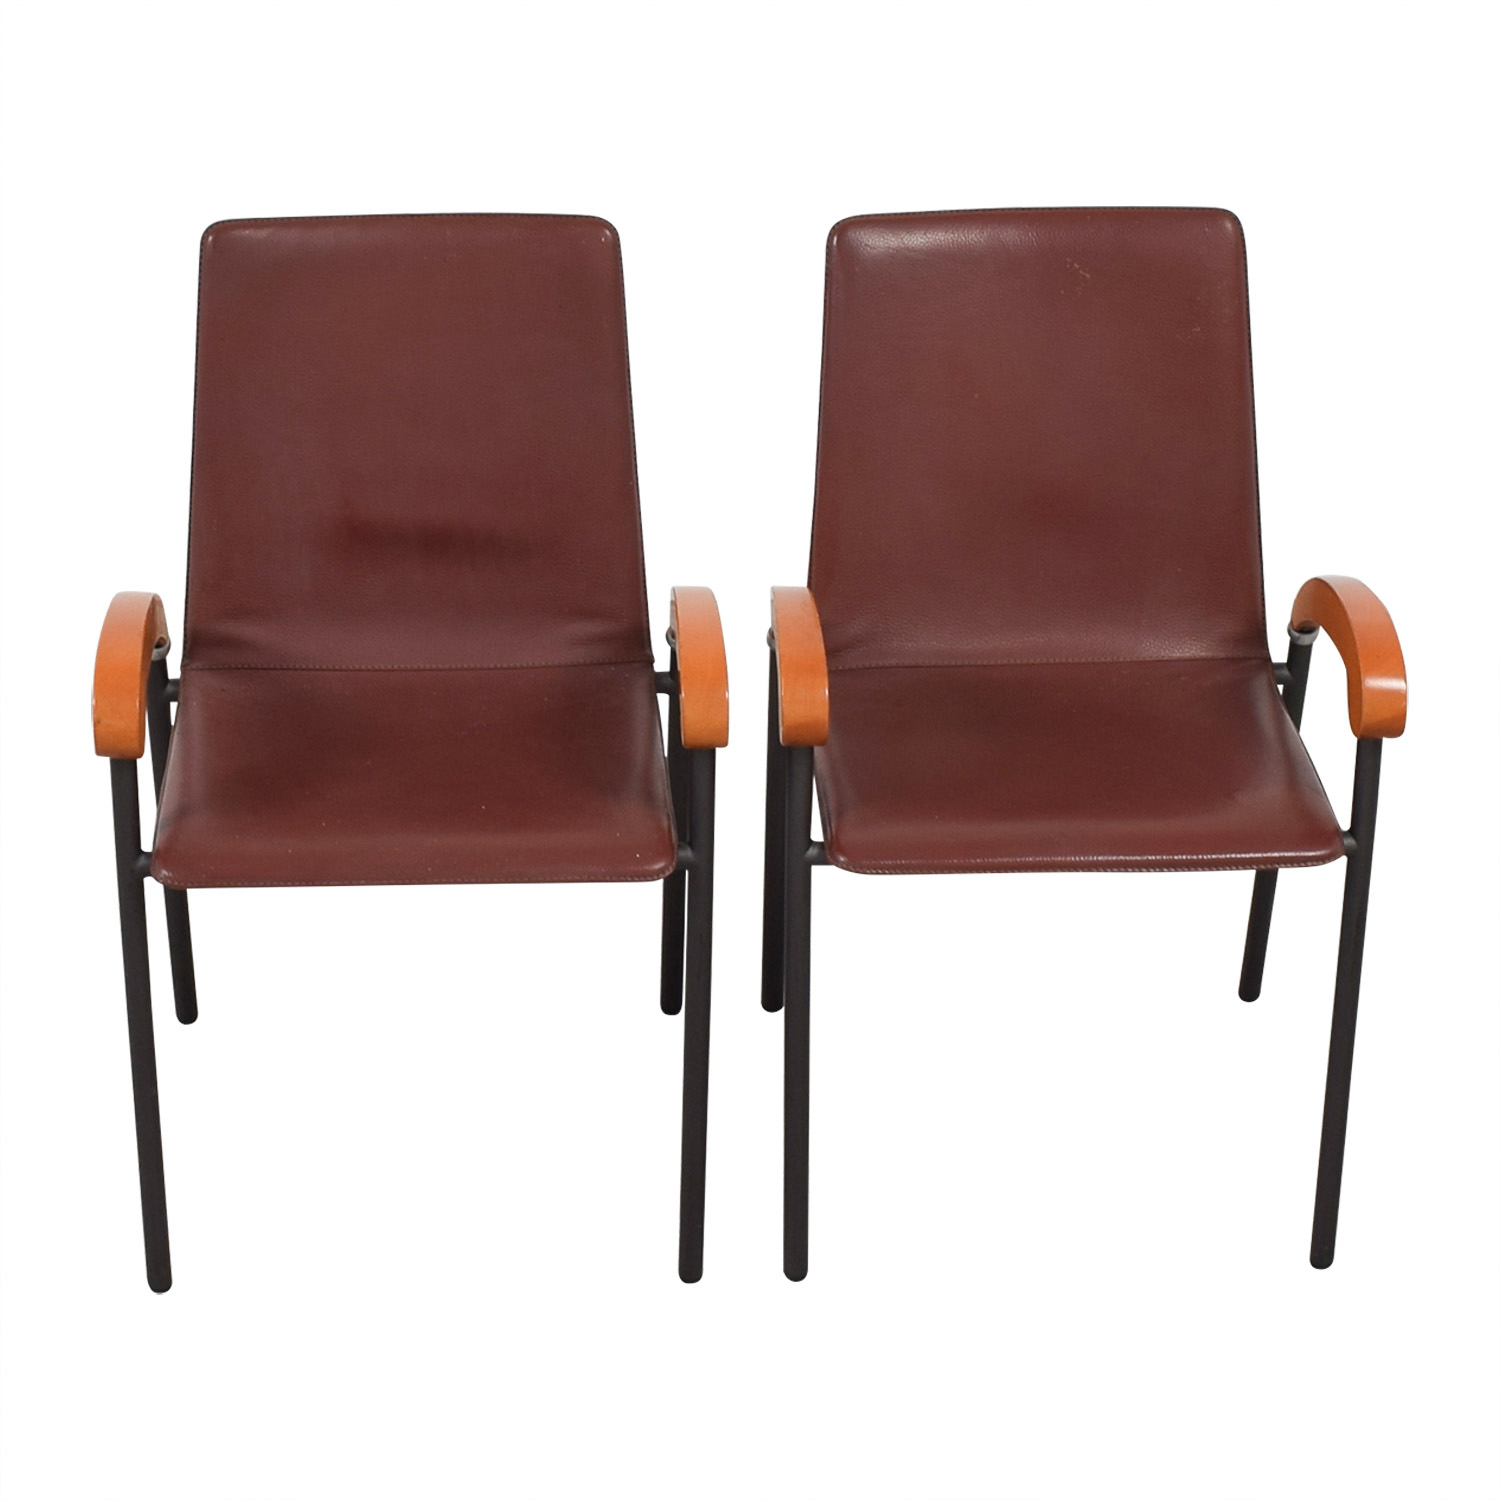 Italian Brown Leather and Cherry Wood Dining Chairs dimensions